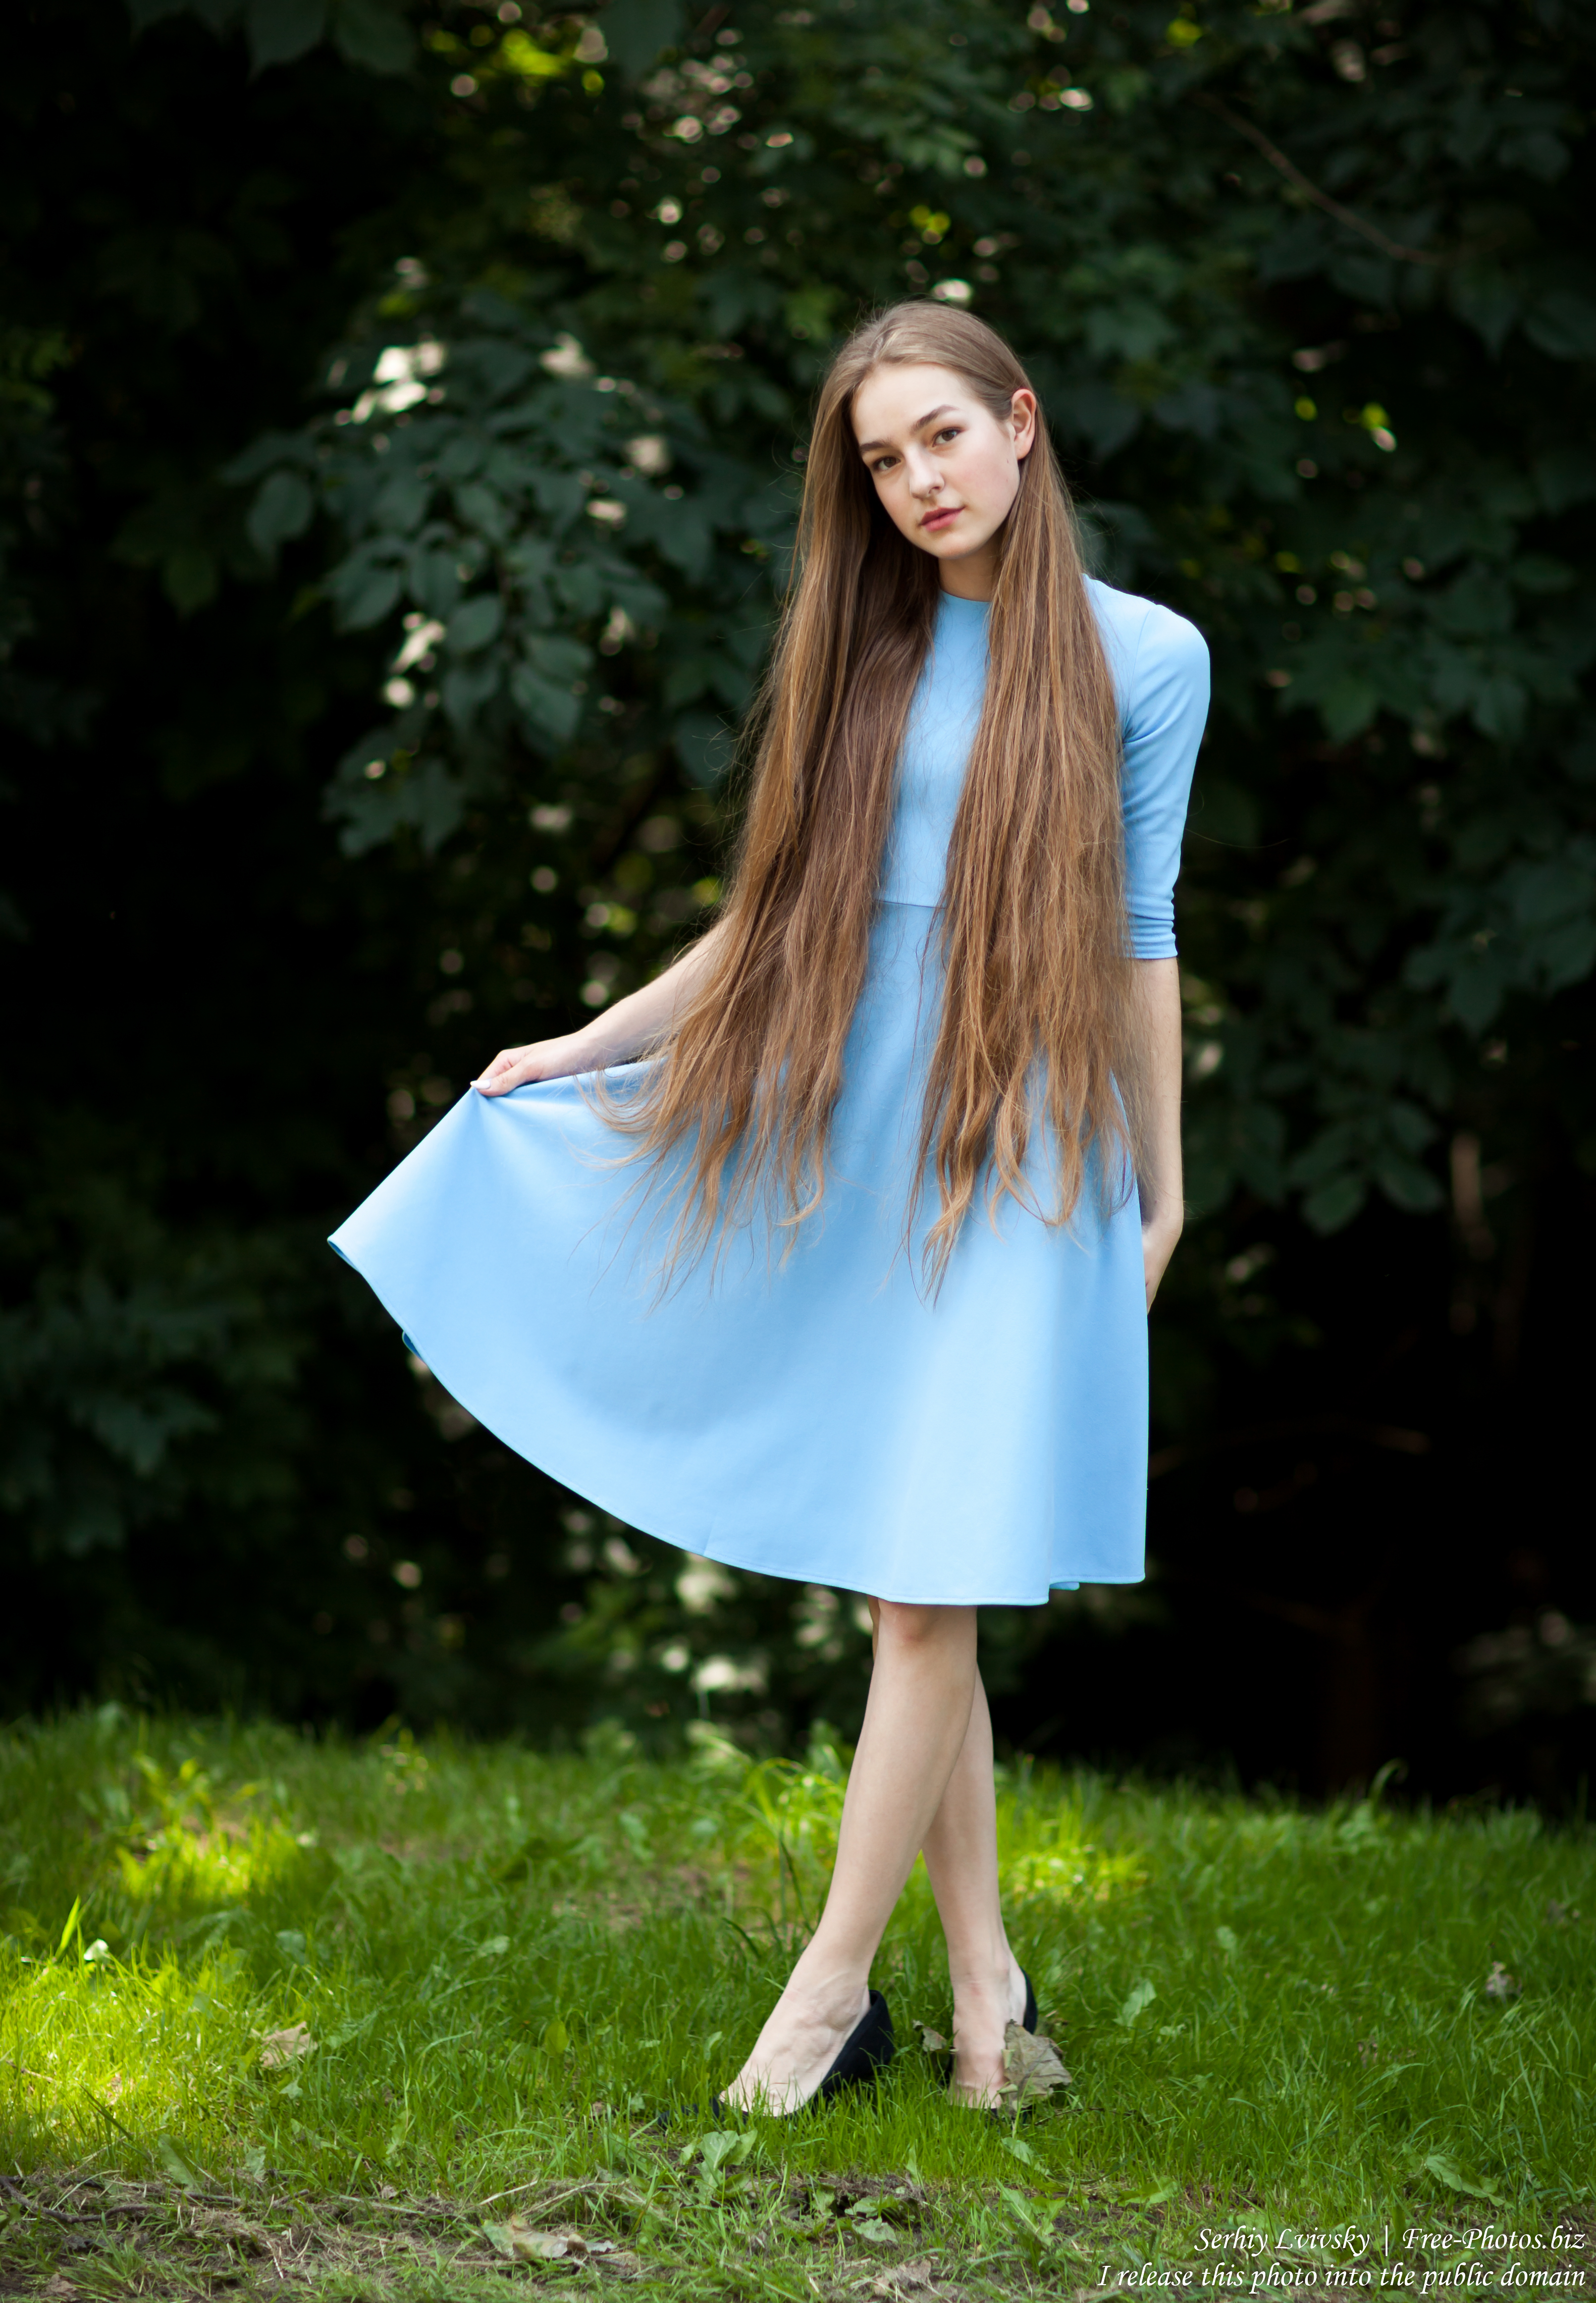 Justyna - a 16-year-old fair-haired girl photographed in June 2018 by Serhiy Lvivsky, picture 13